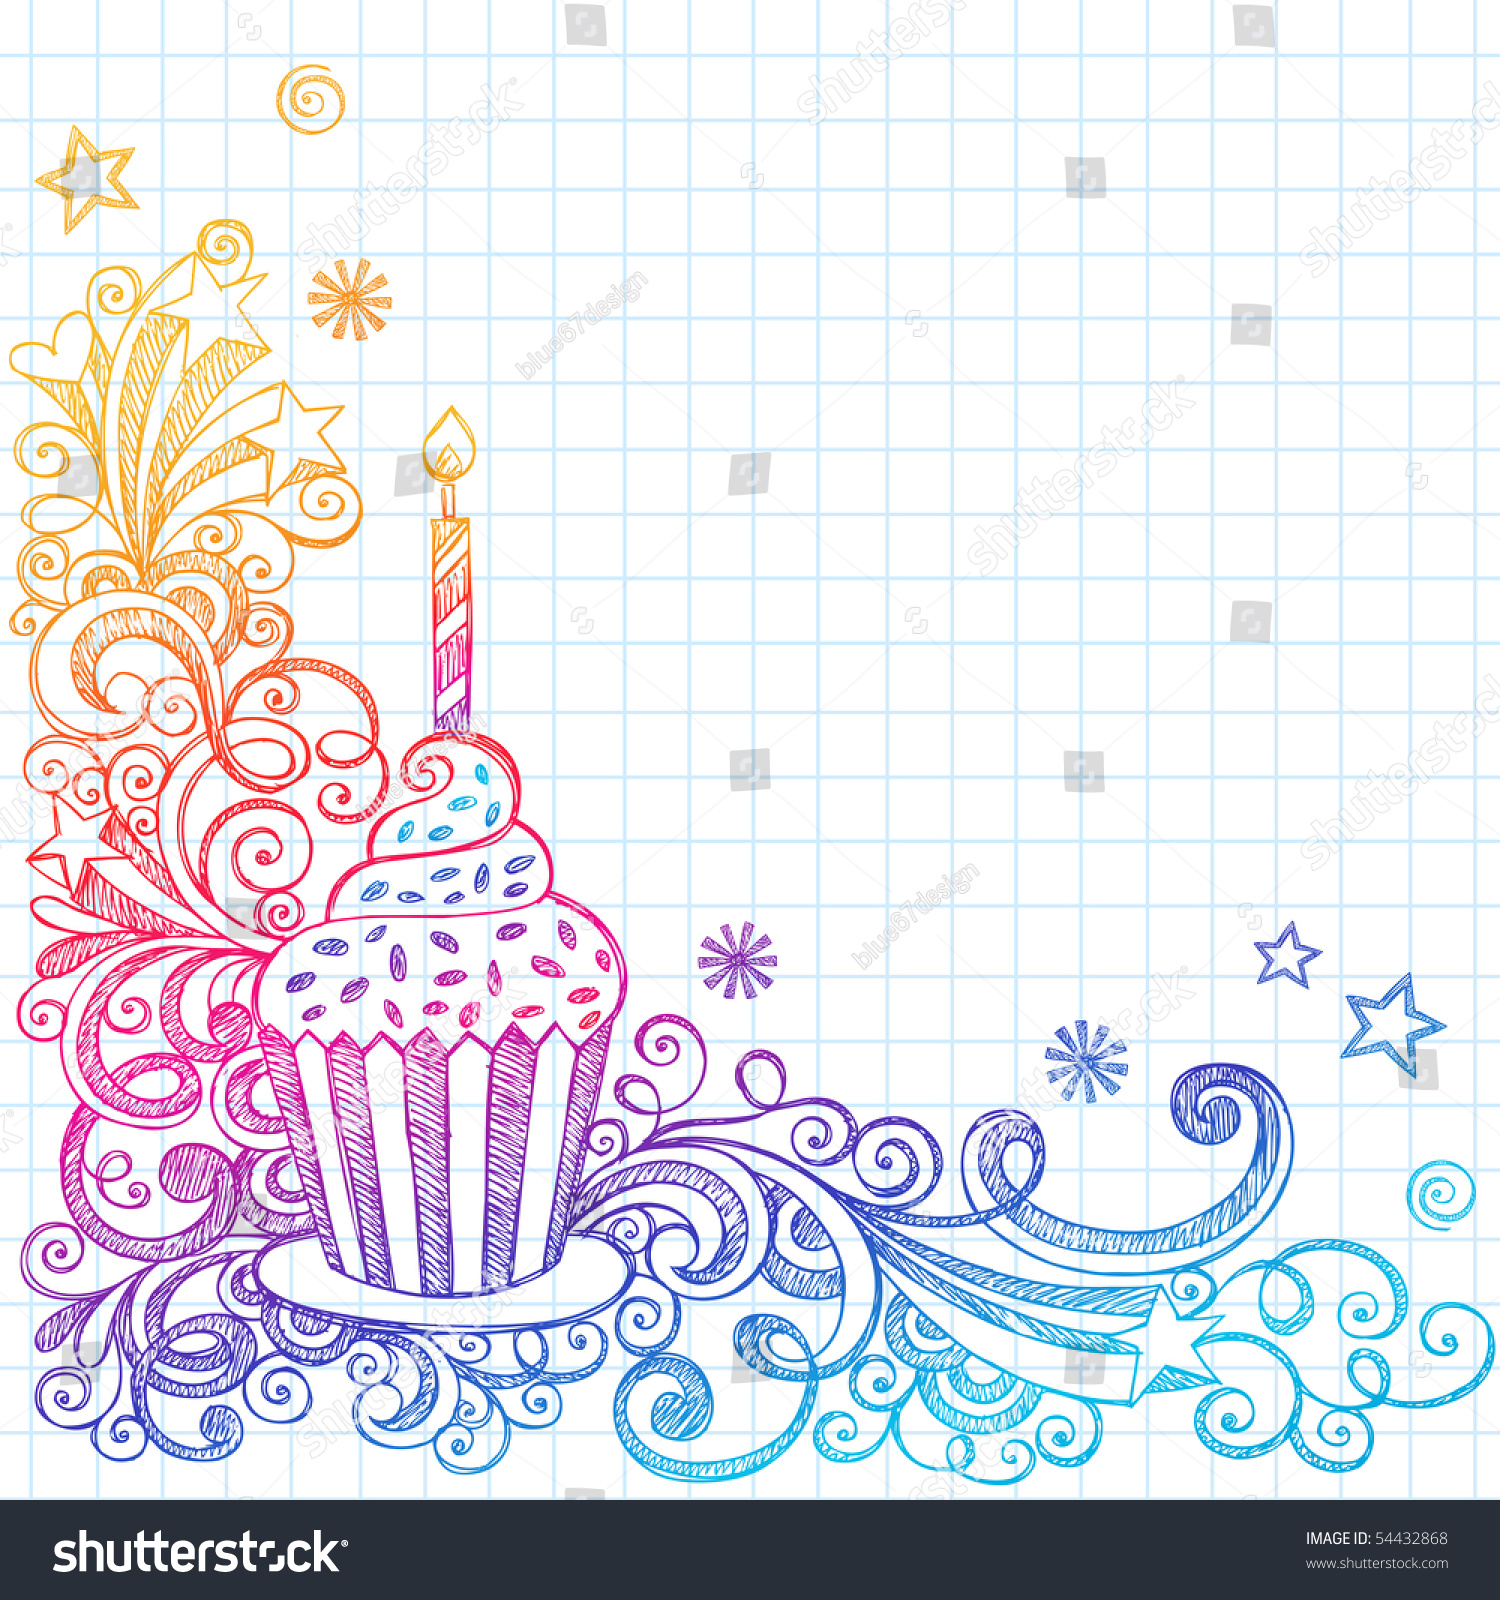 Handdrawn Sketchy Ornate Cupcake Doodle Page Stock Vector